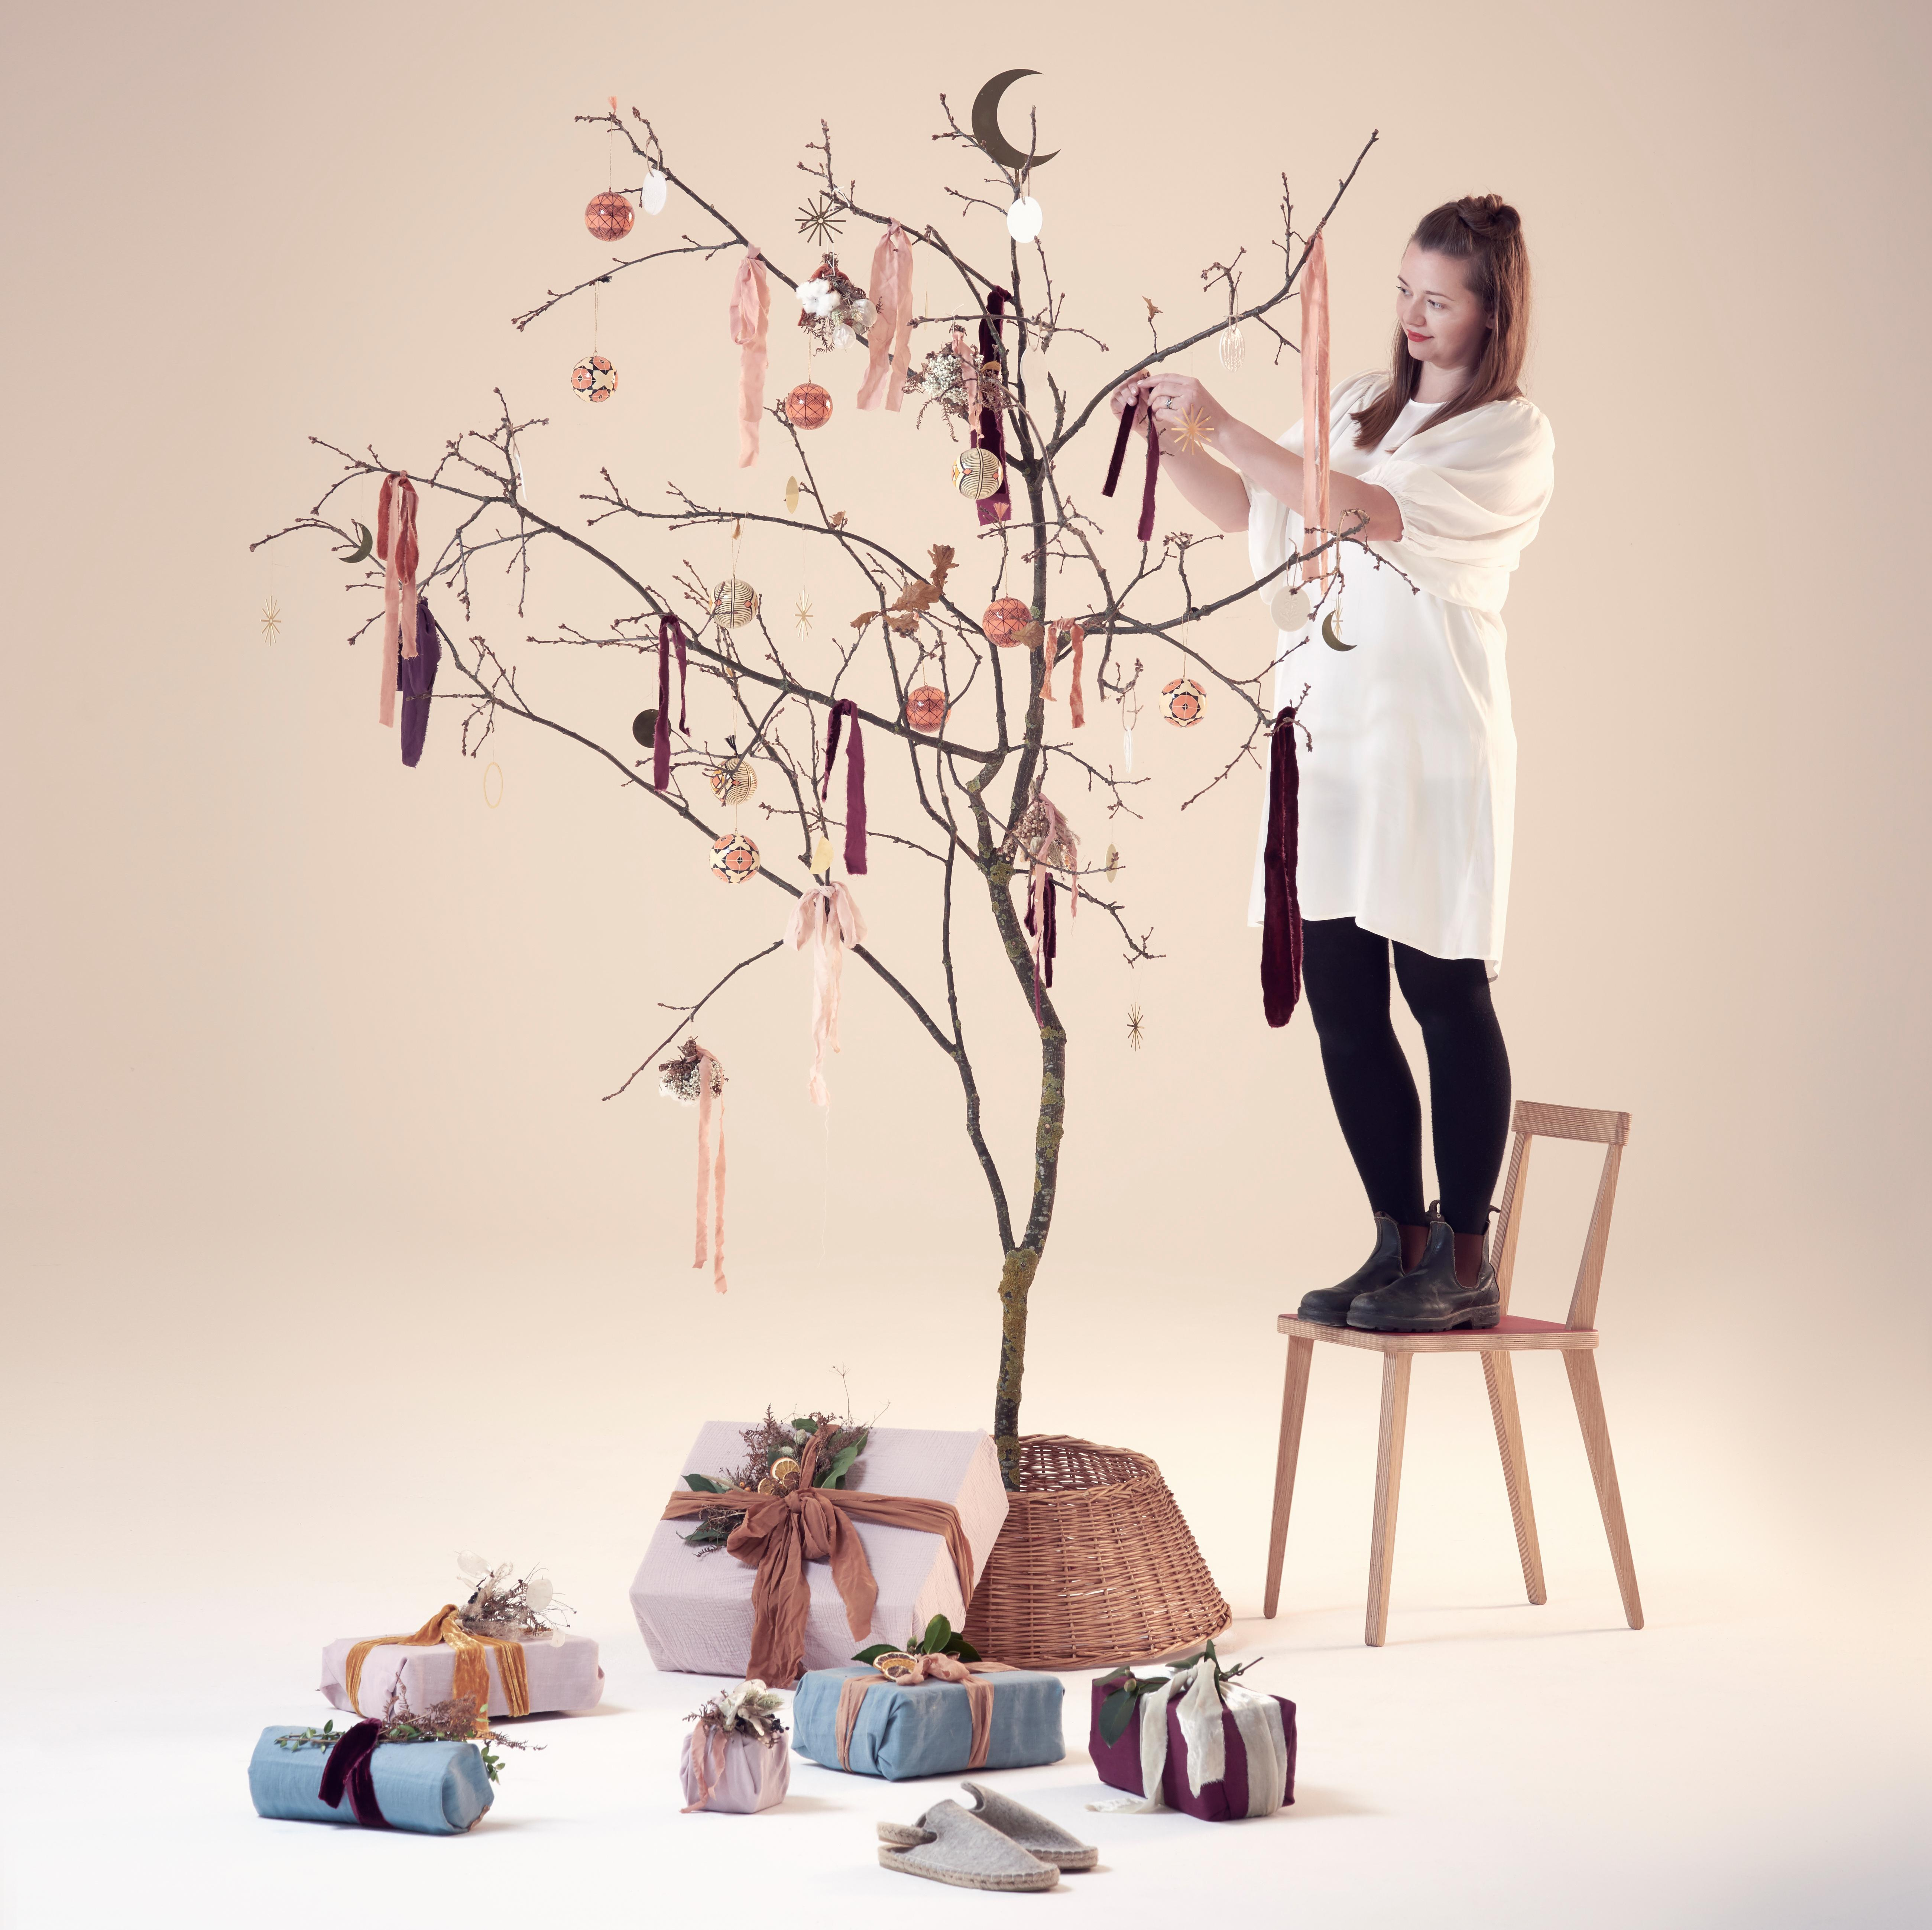 Dreaming of a green Christmas: make your own sustainable tree